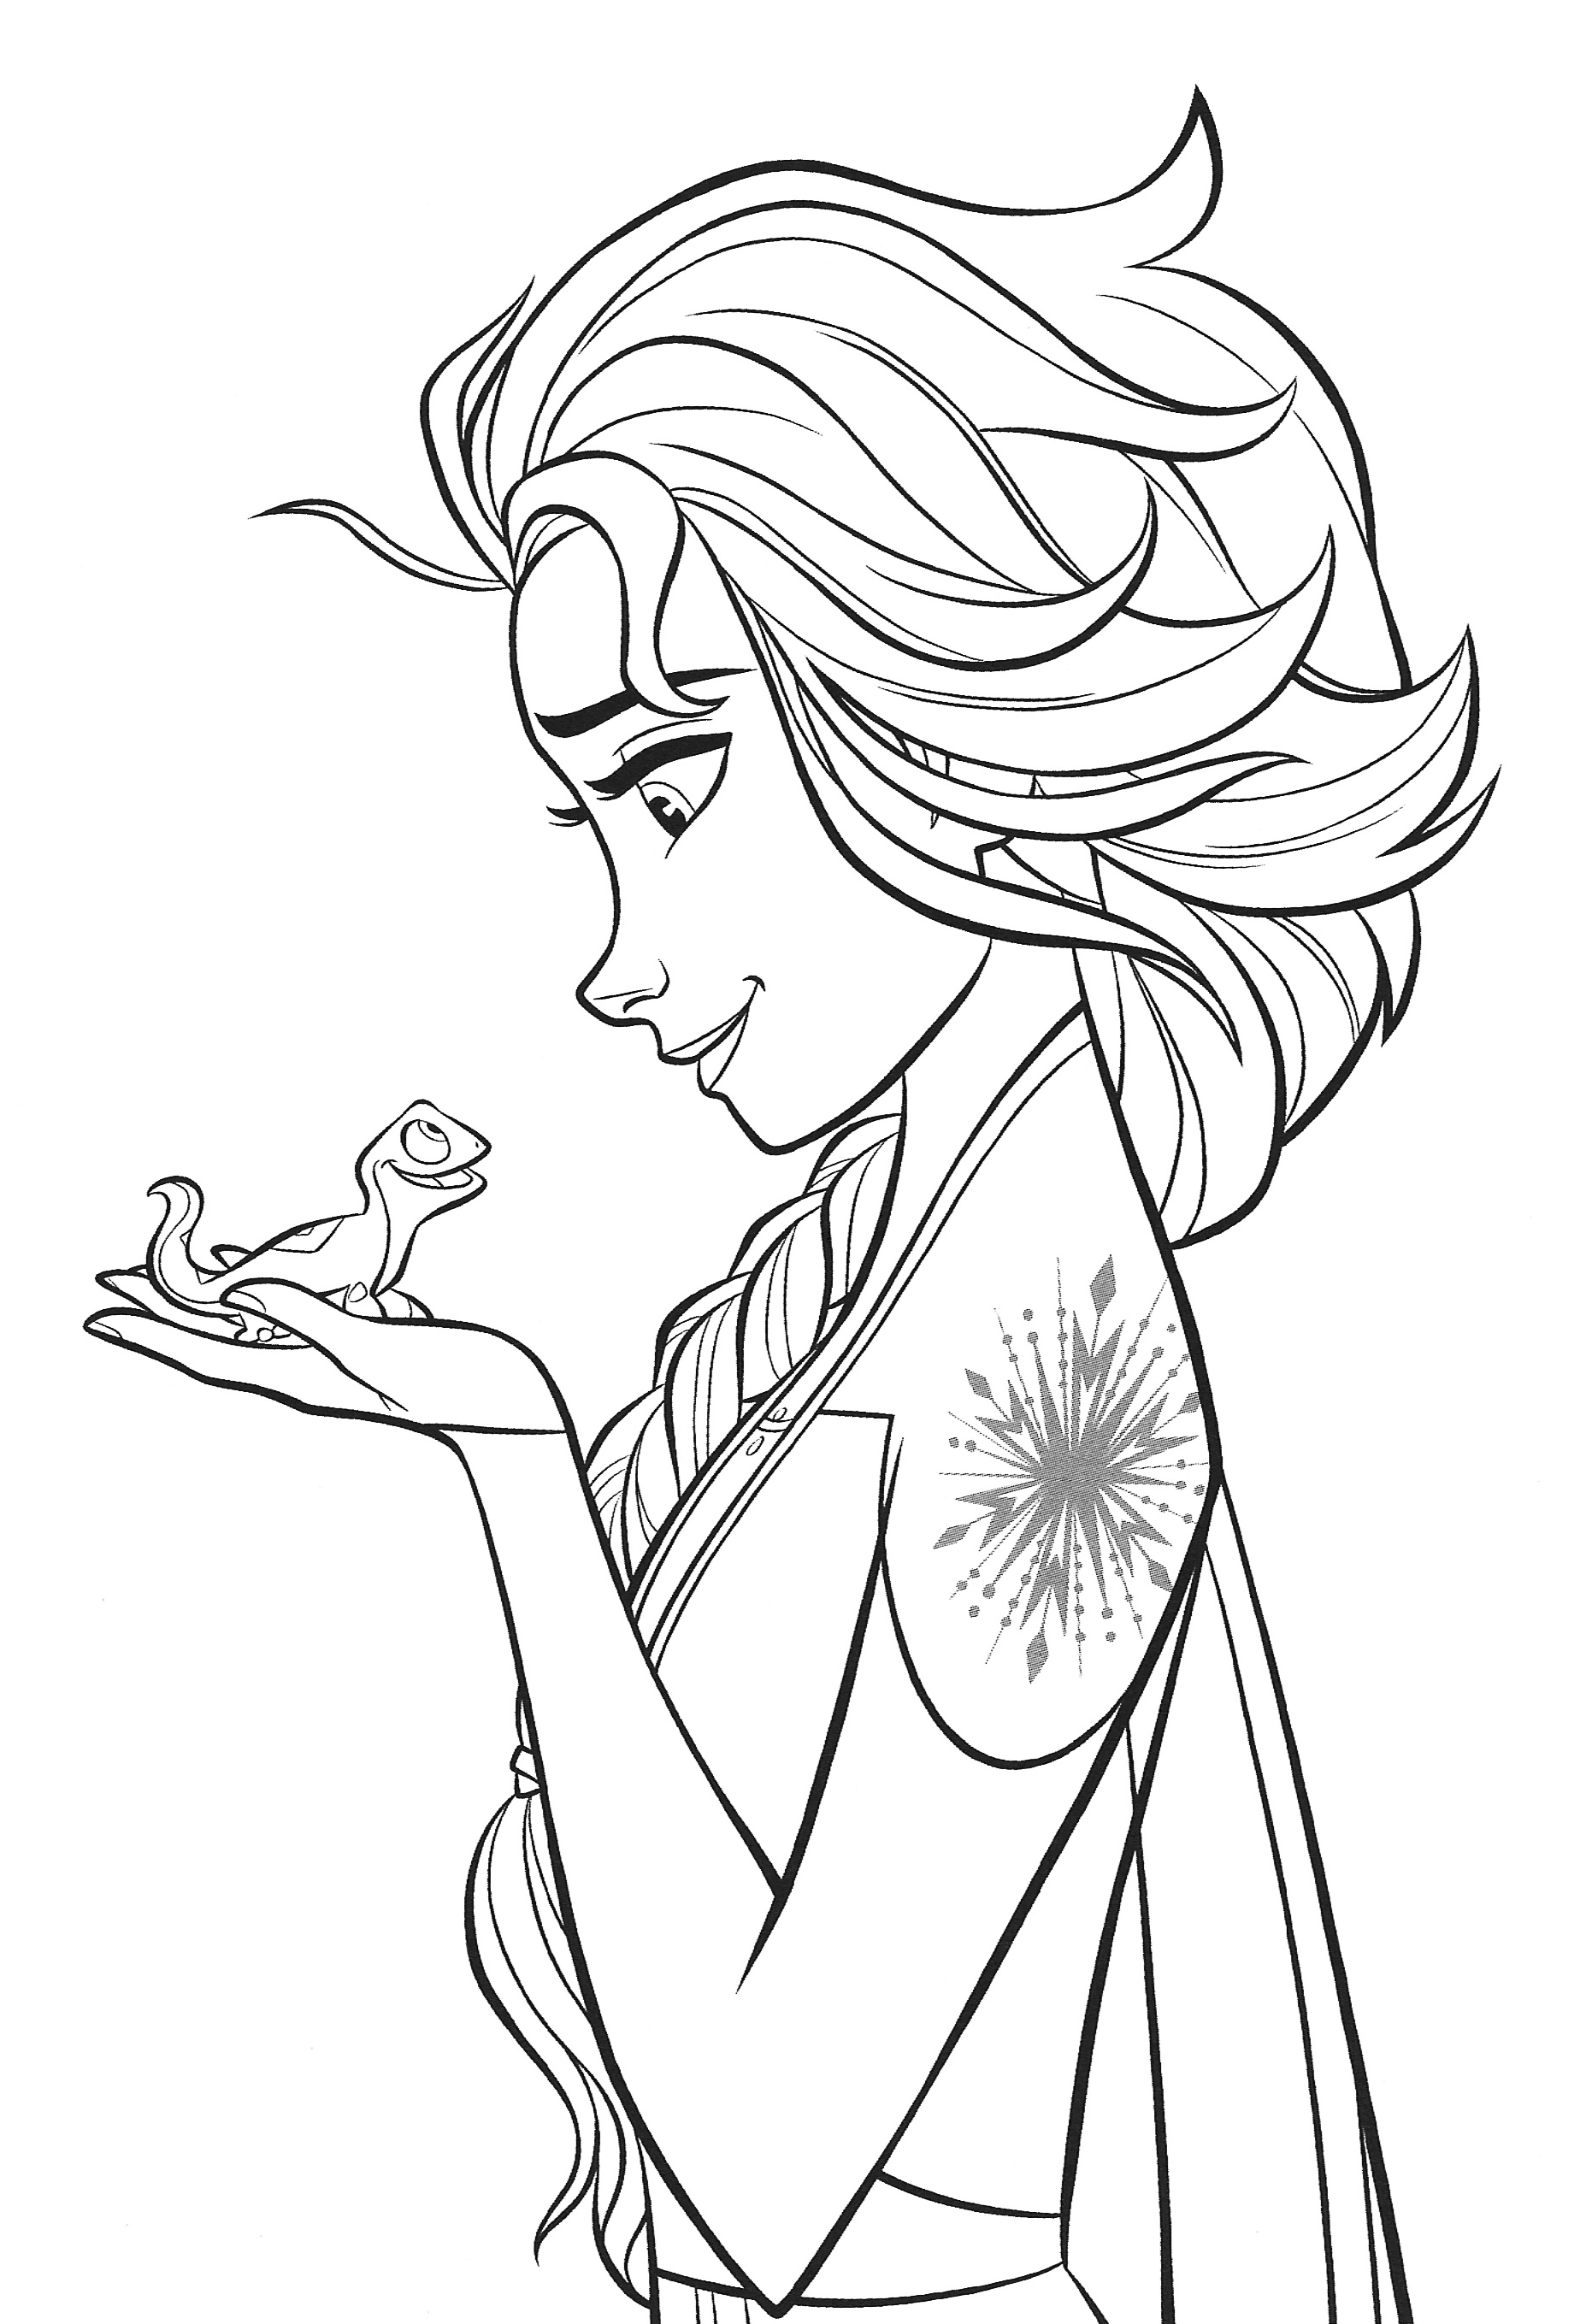 frozen colouring in sheets disney frozen coloring pages lovebugs and postcards colouring in sheets frozen